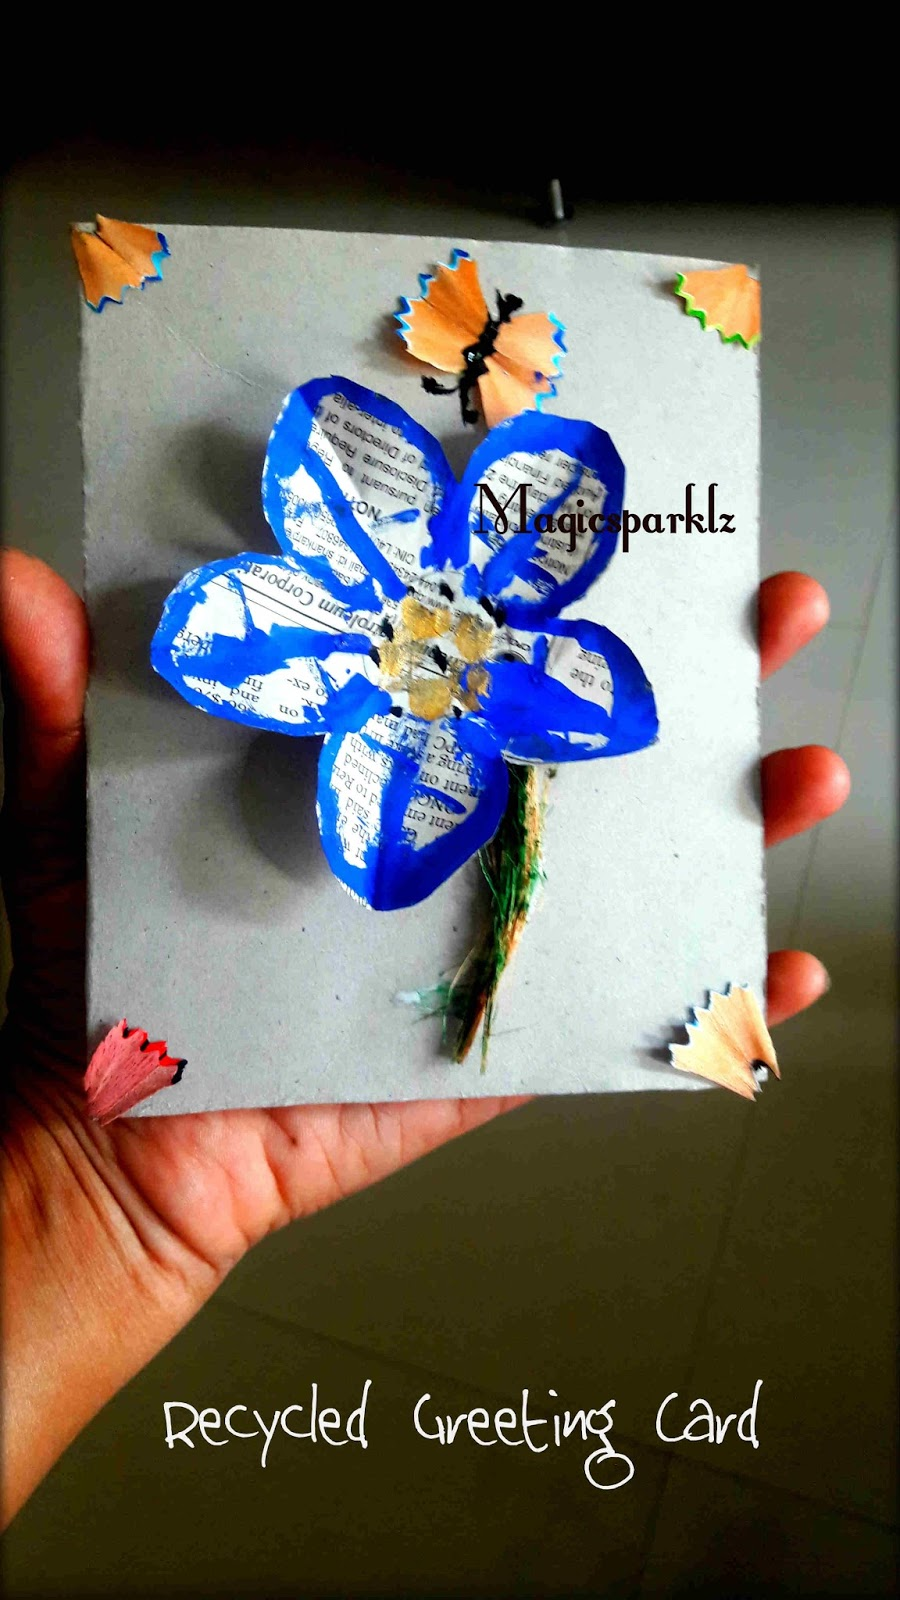 Magic sparklz how to make greeting card with recycled materials how to make greeting card with recycled materials kids recycle project kristyandbryce Gallery